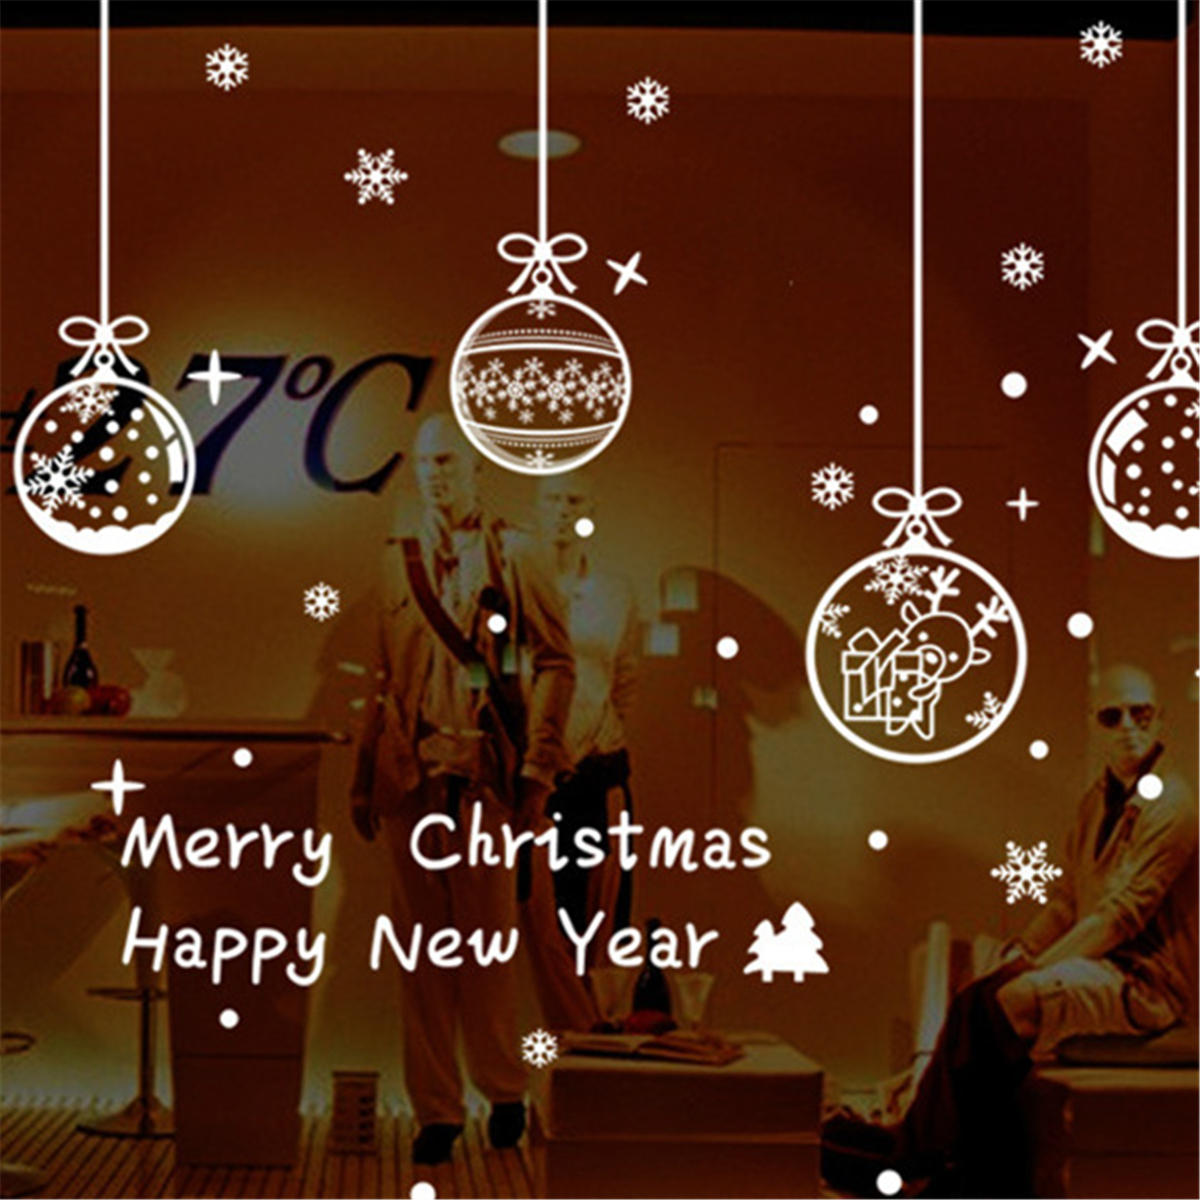 Christmas Window Decals.Happy New Year Xmas Merry Christmas Window Sticker Snowflake Bell Home Decorations